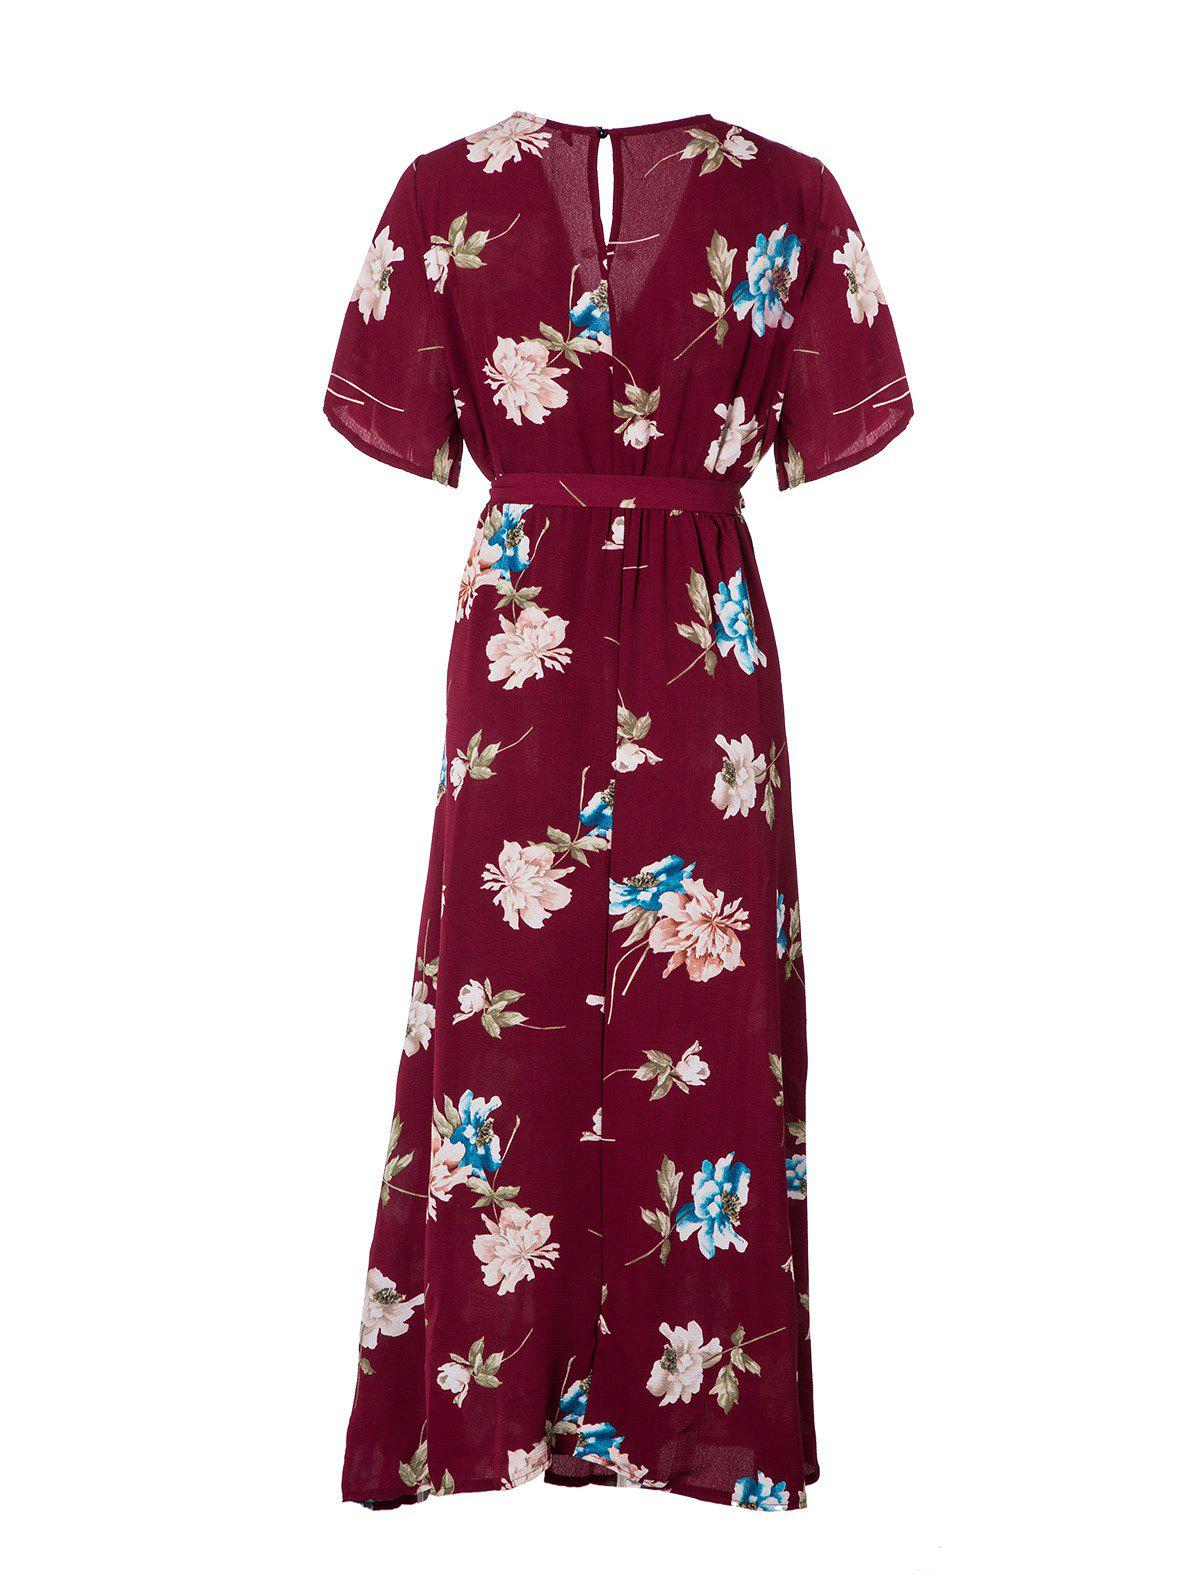 Women's V Neck Printed Sexy Chiffon Dress - RED WINE M